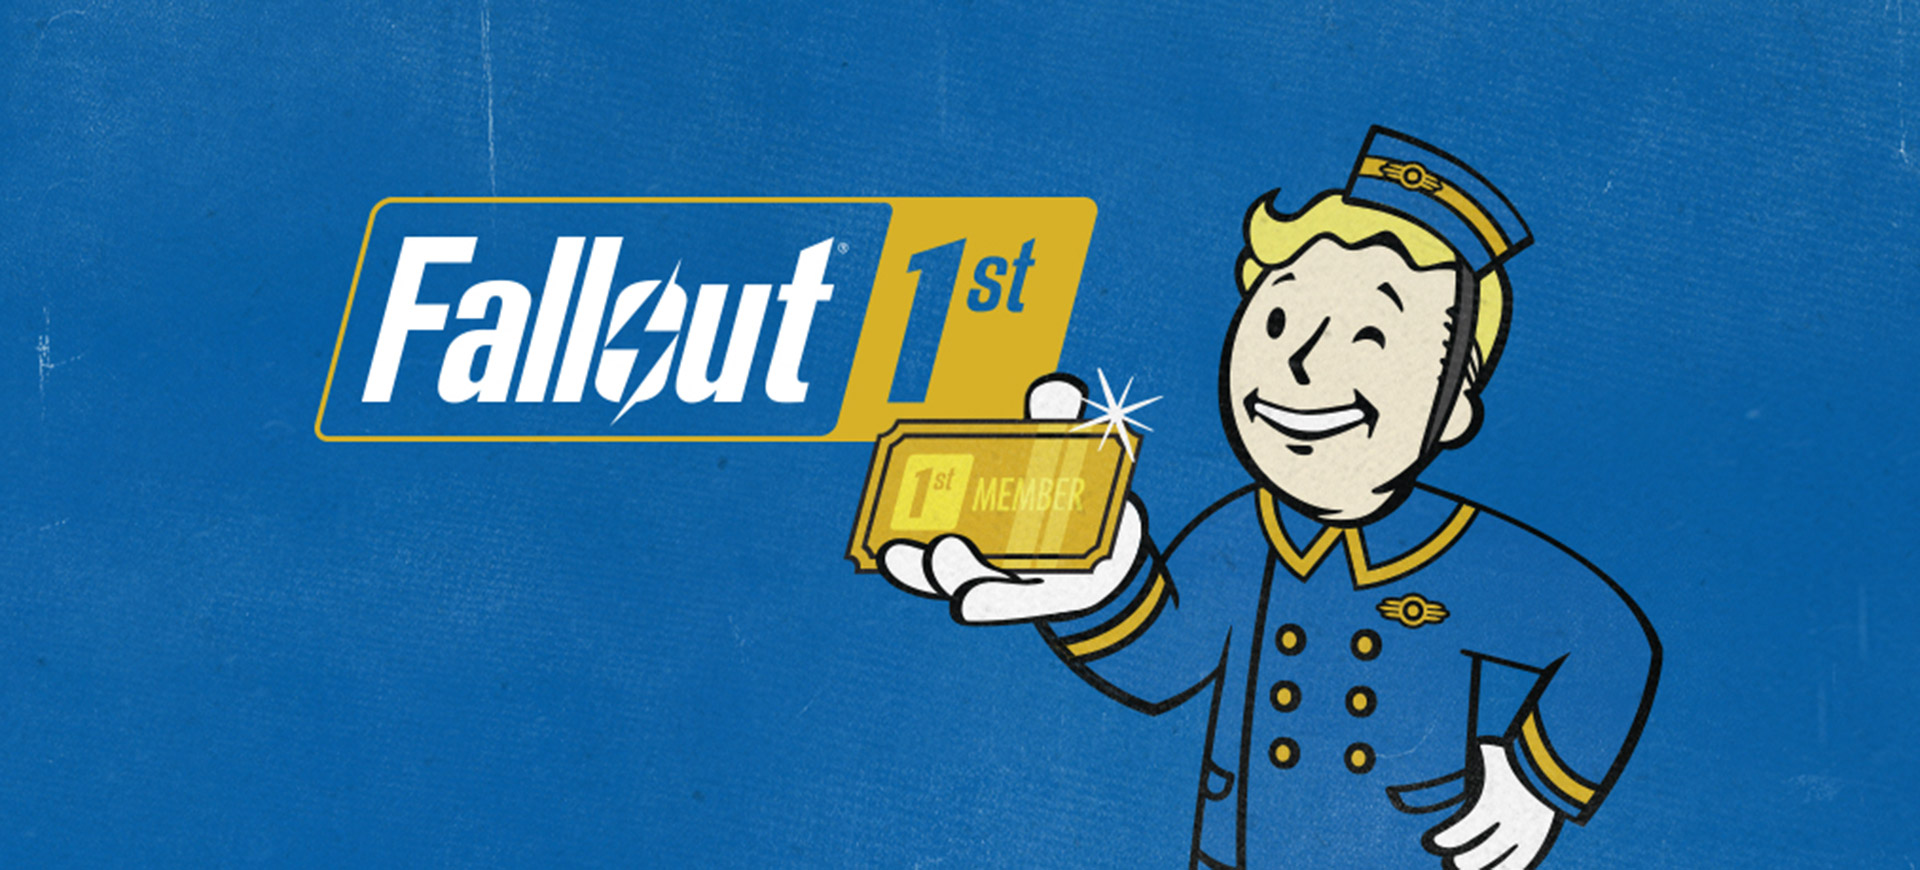 Bethesda Offers Ultra Exclusive Zone For Fallout Fans, But For A Premium Price